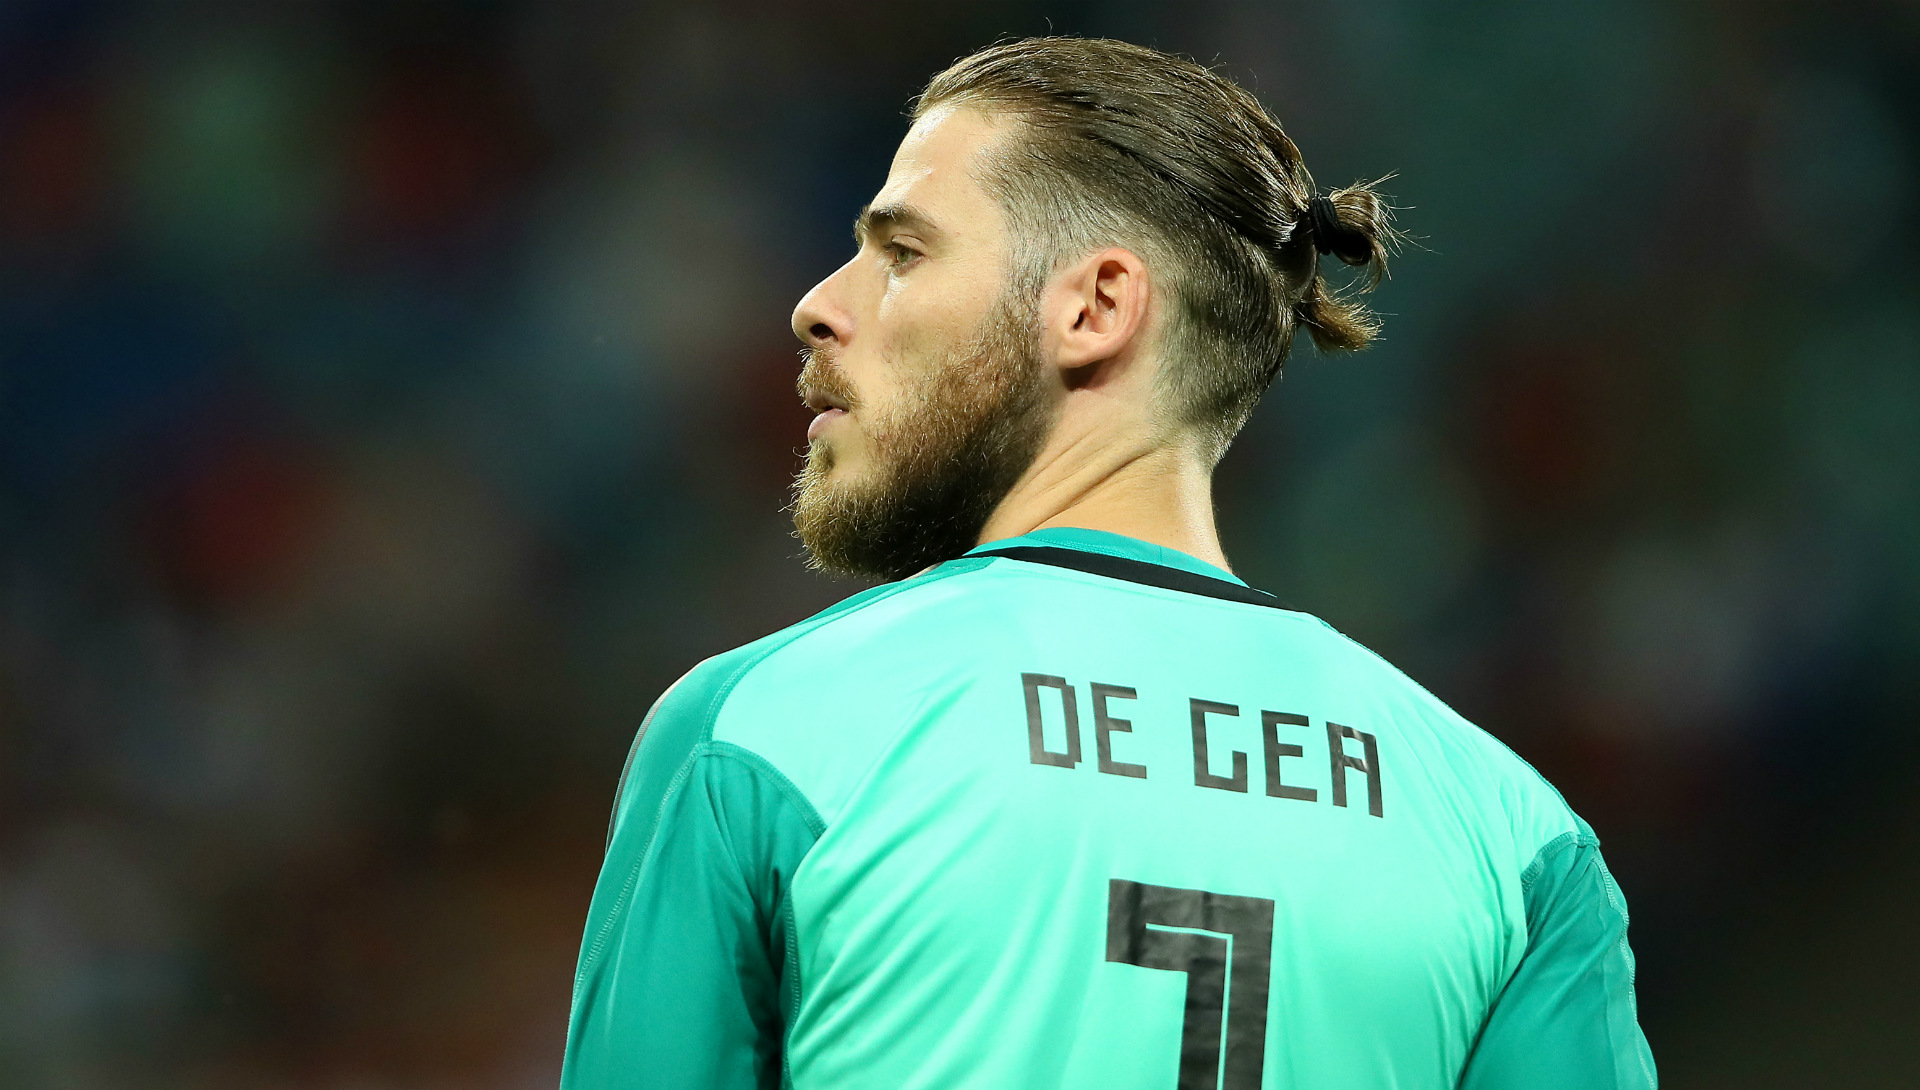 World Cup 2018: Why Spain would have been wrong to drop De Gea